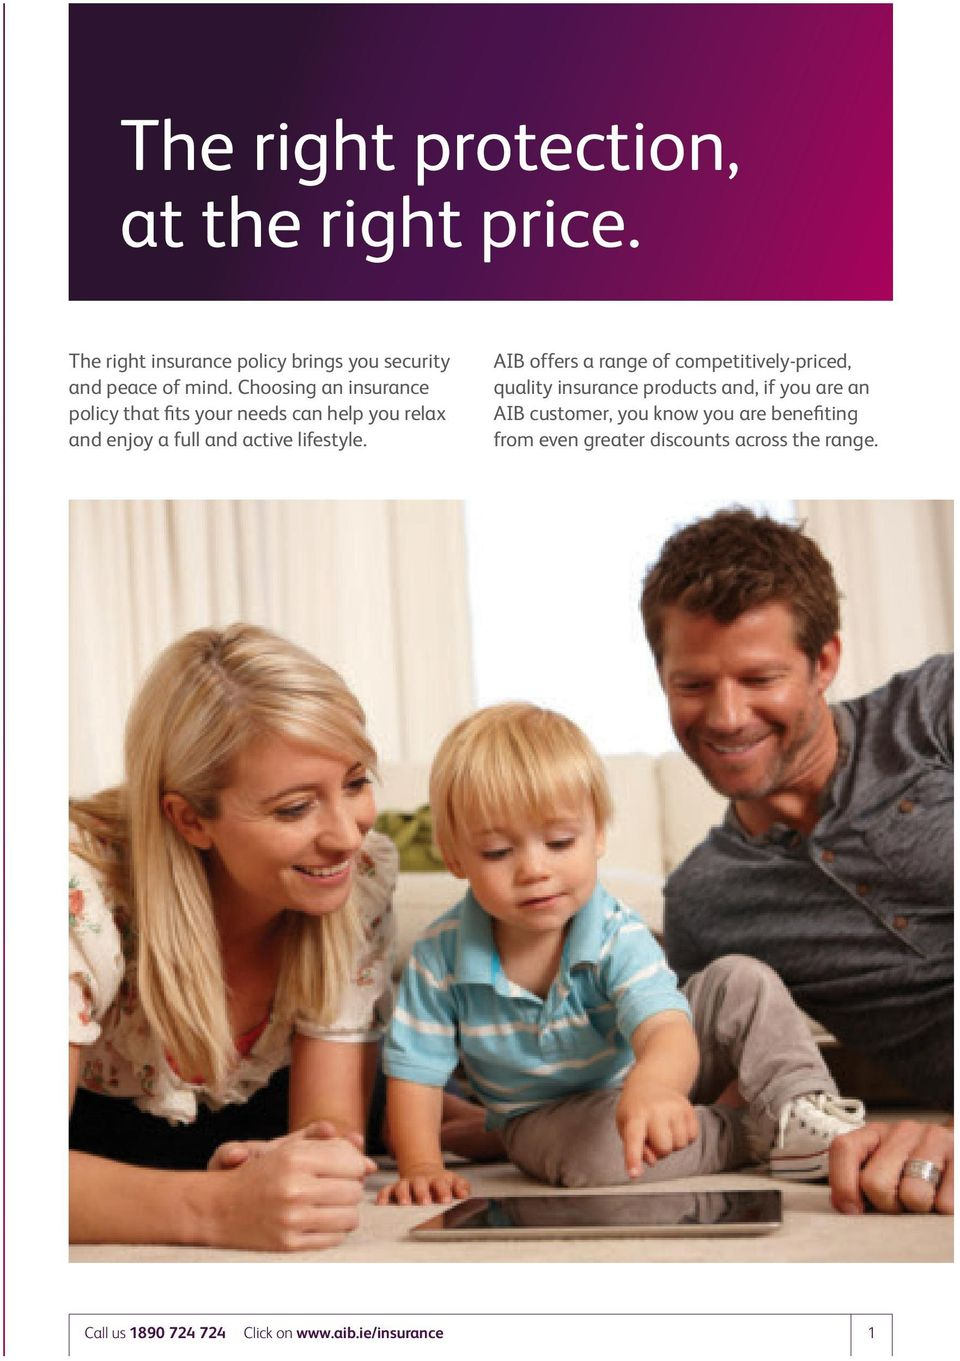 AIB offers a range of competitively-priced, quality insurance products and, if you are an AIB customer, you